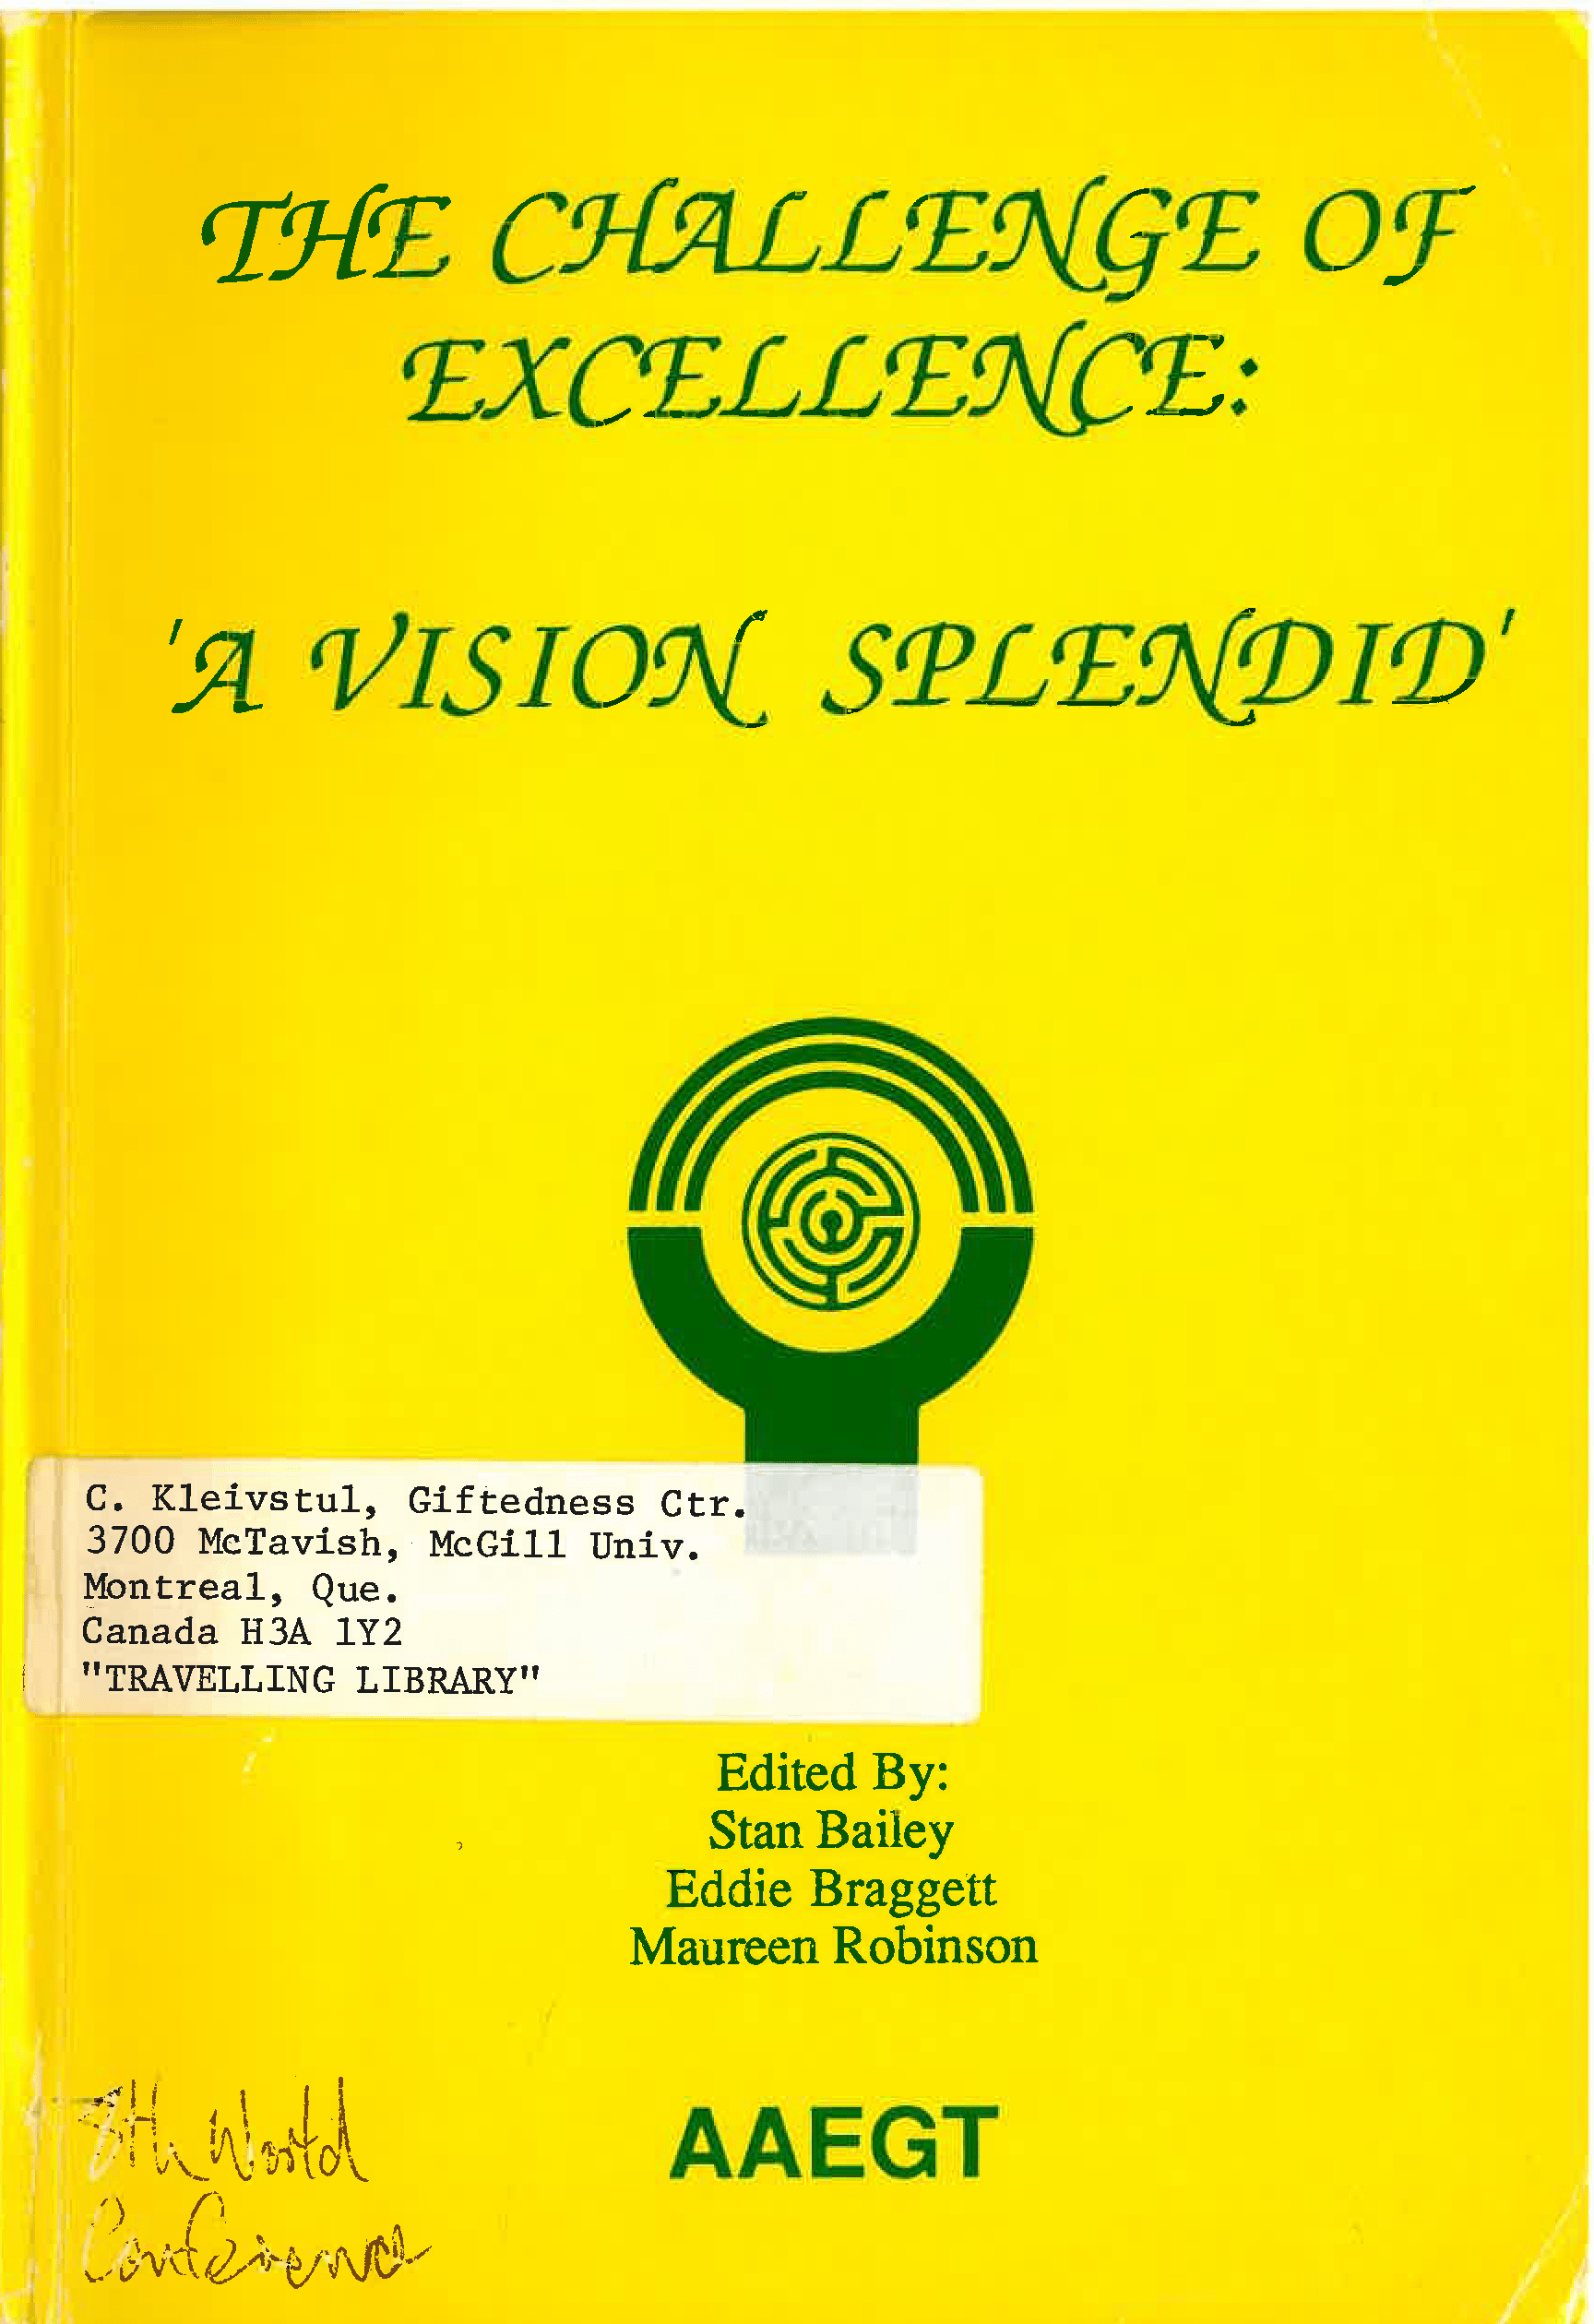 1989 World Conference Proceedings Cover Sydney Australia